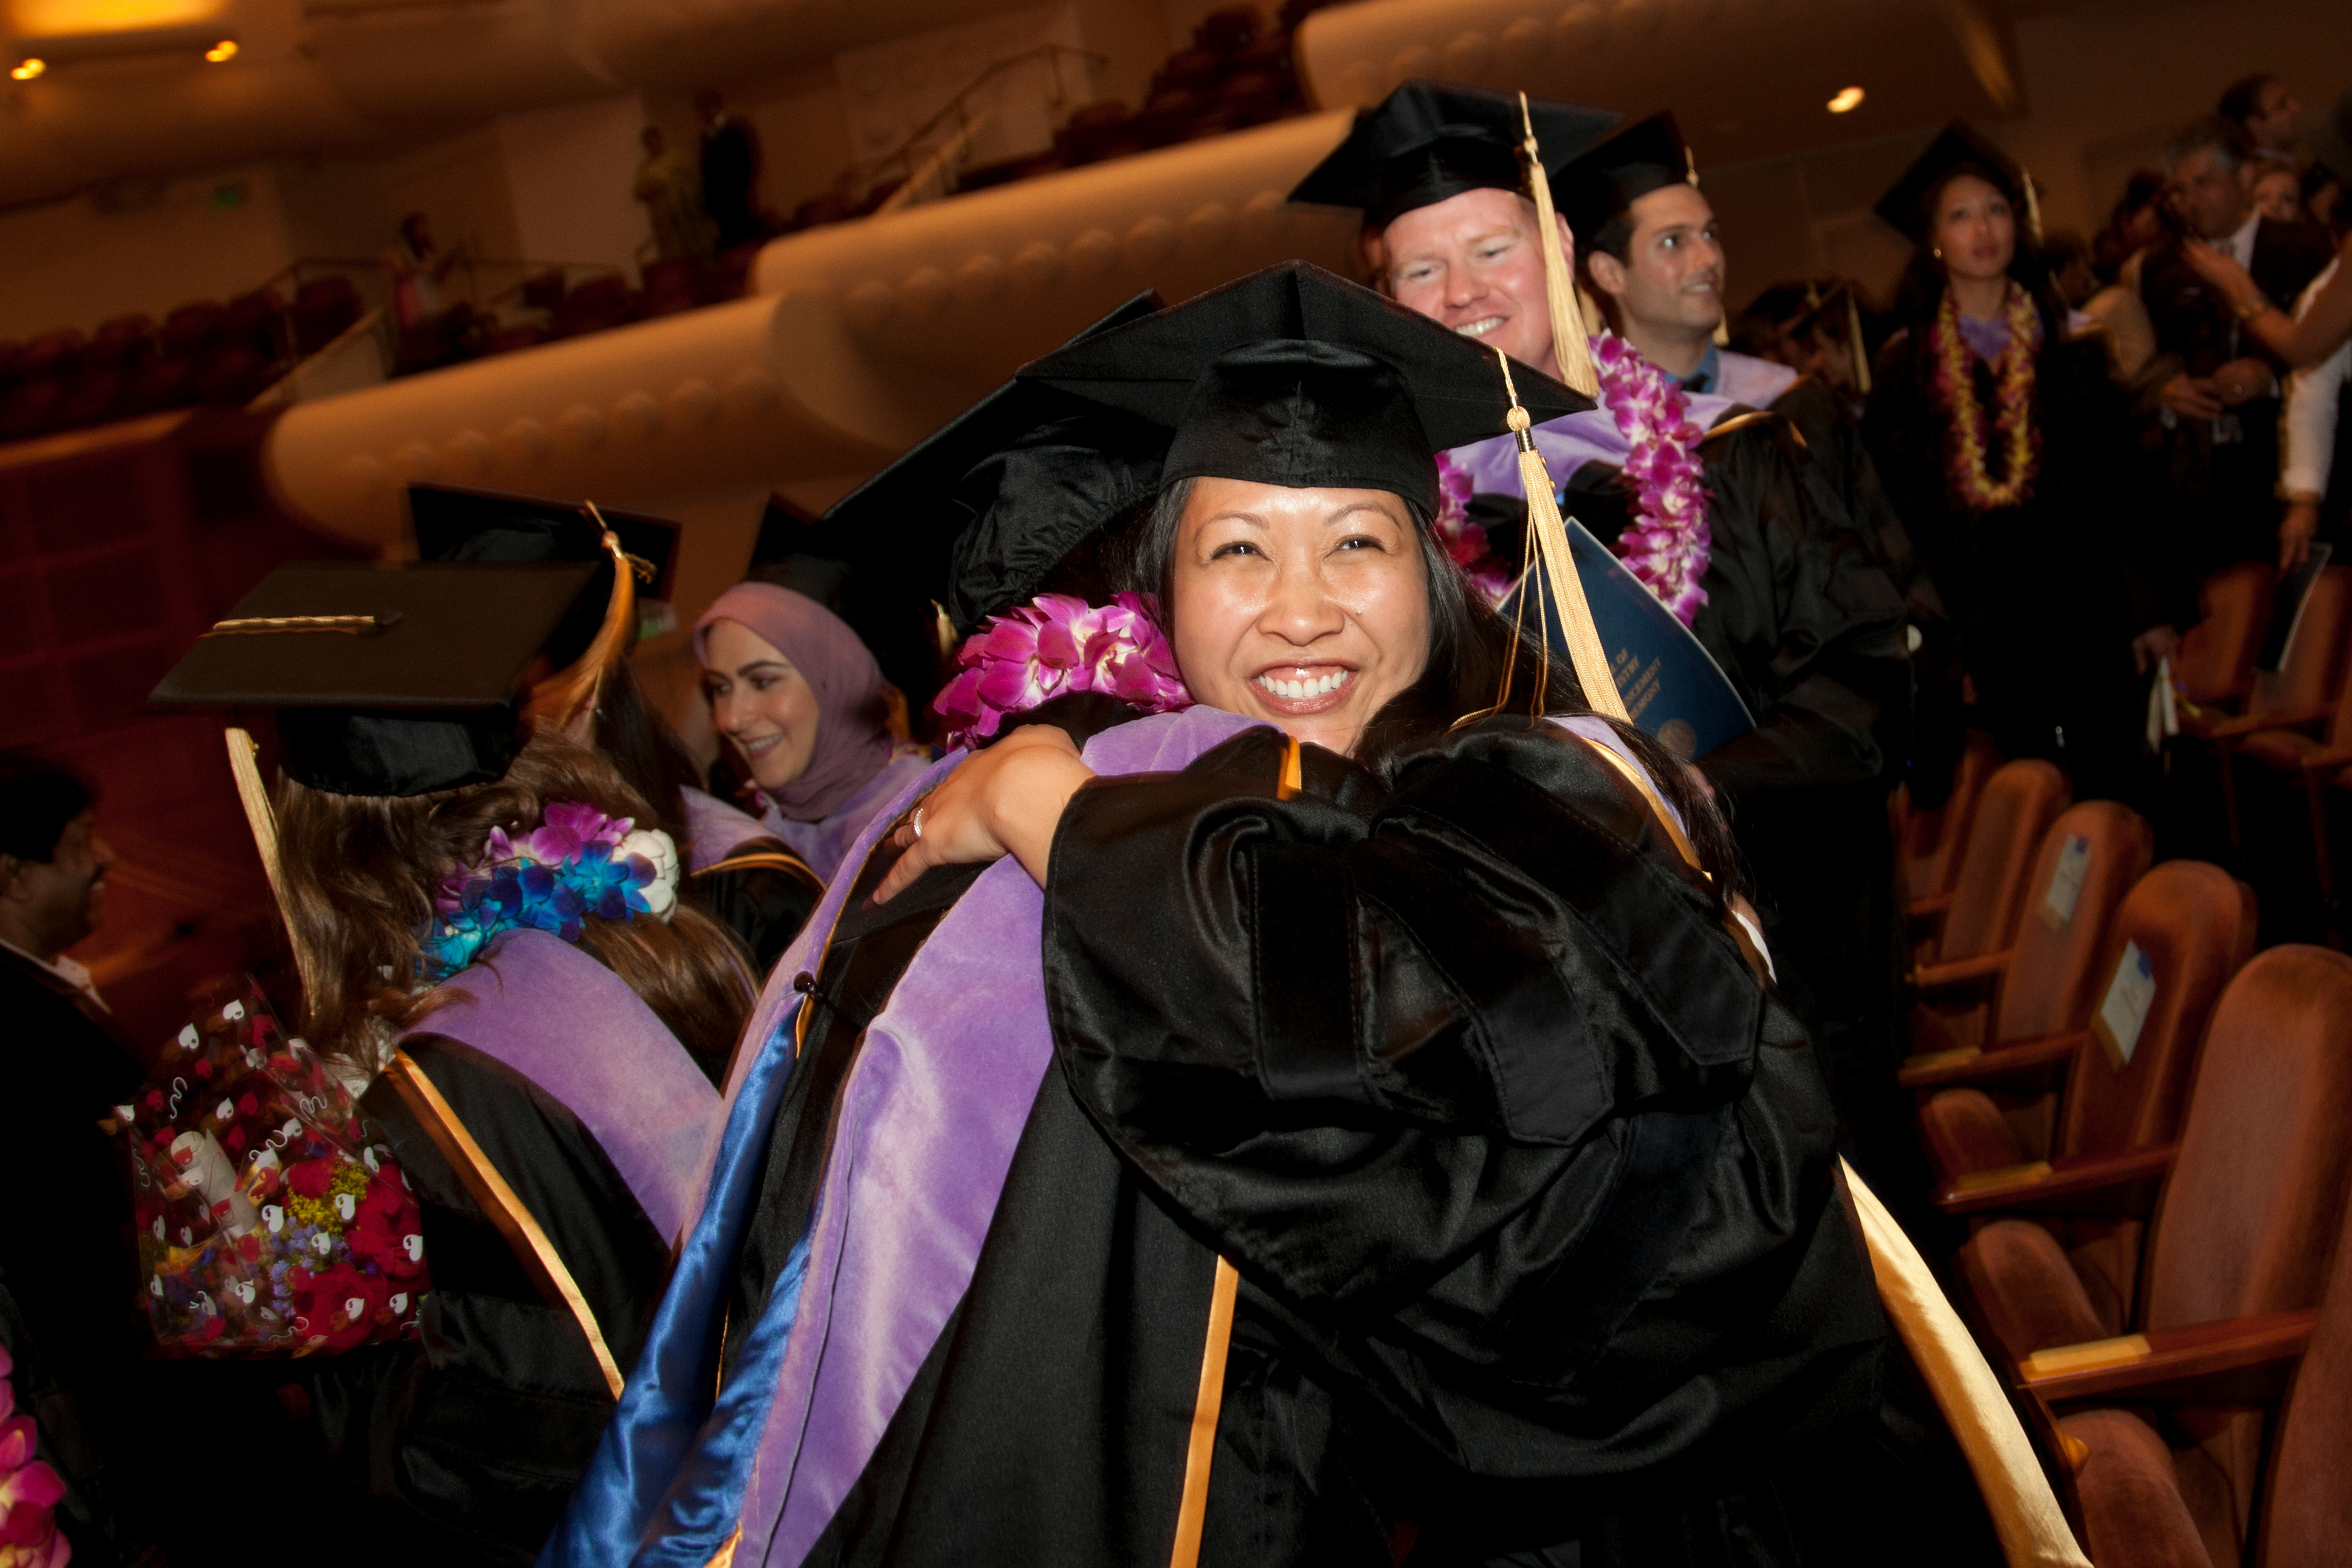 Graduates rejoice in the successful completion of long journey in education that began many moons ago as kindergartners.